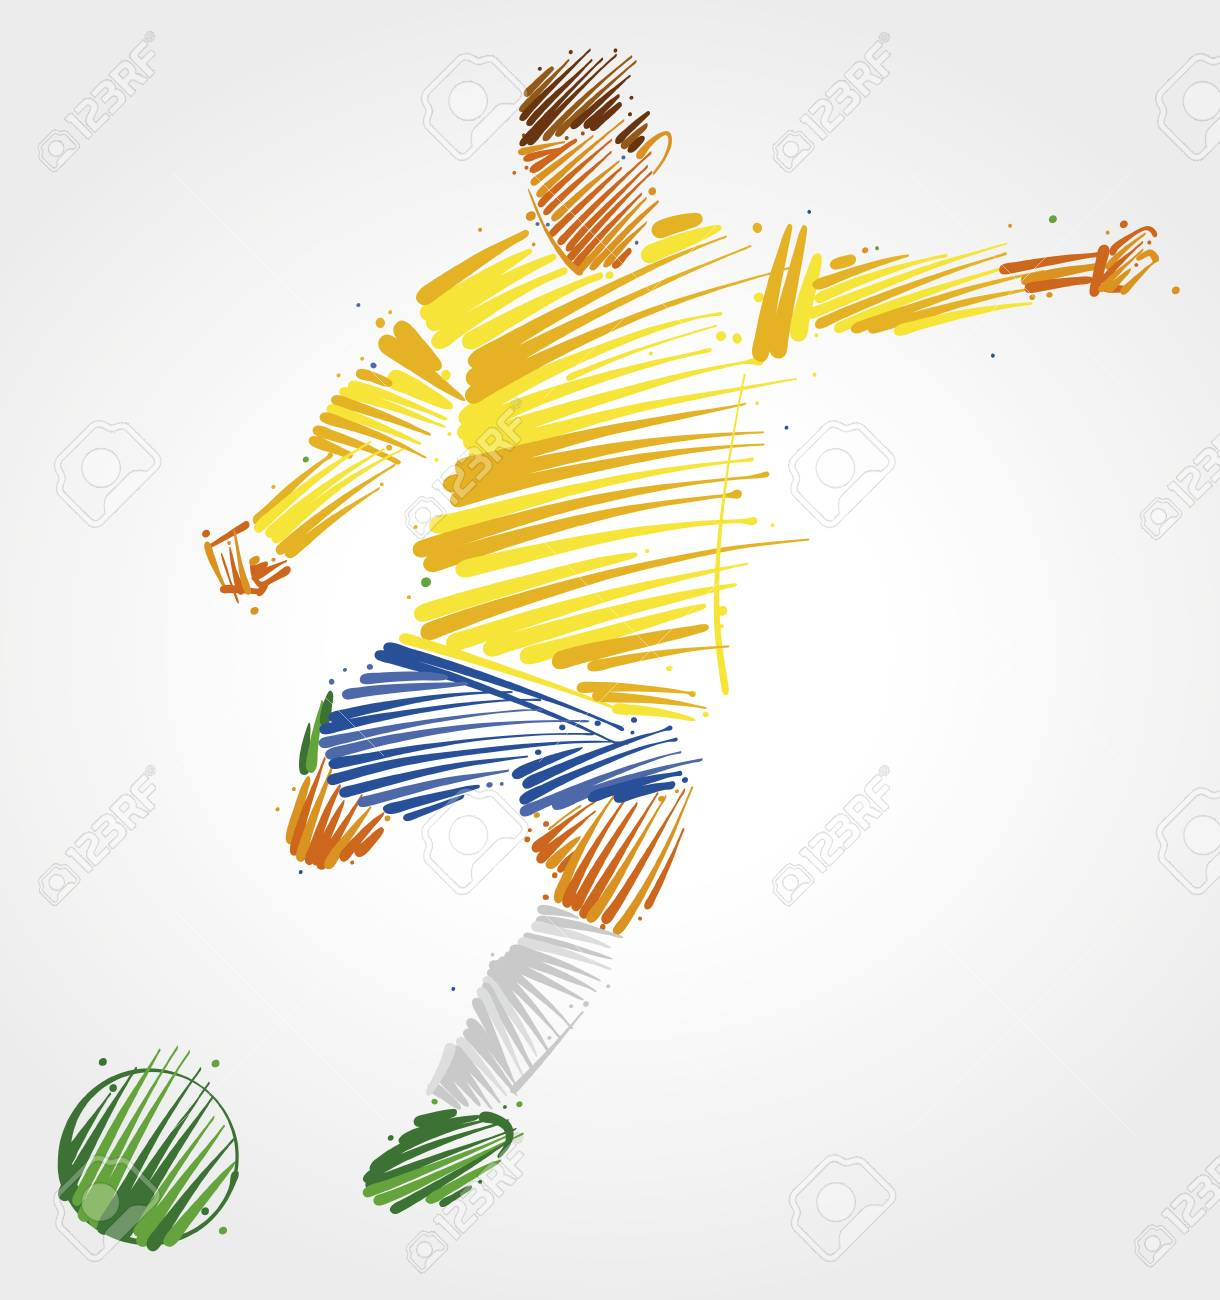 Soccer player kicking the ball made of colorful brushstrokes on light background - 93523539